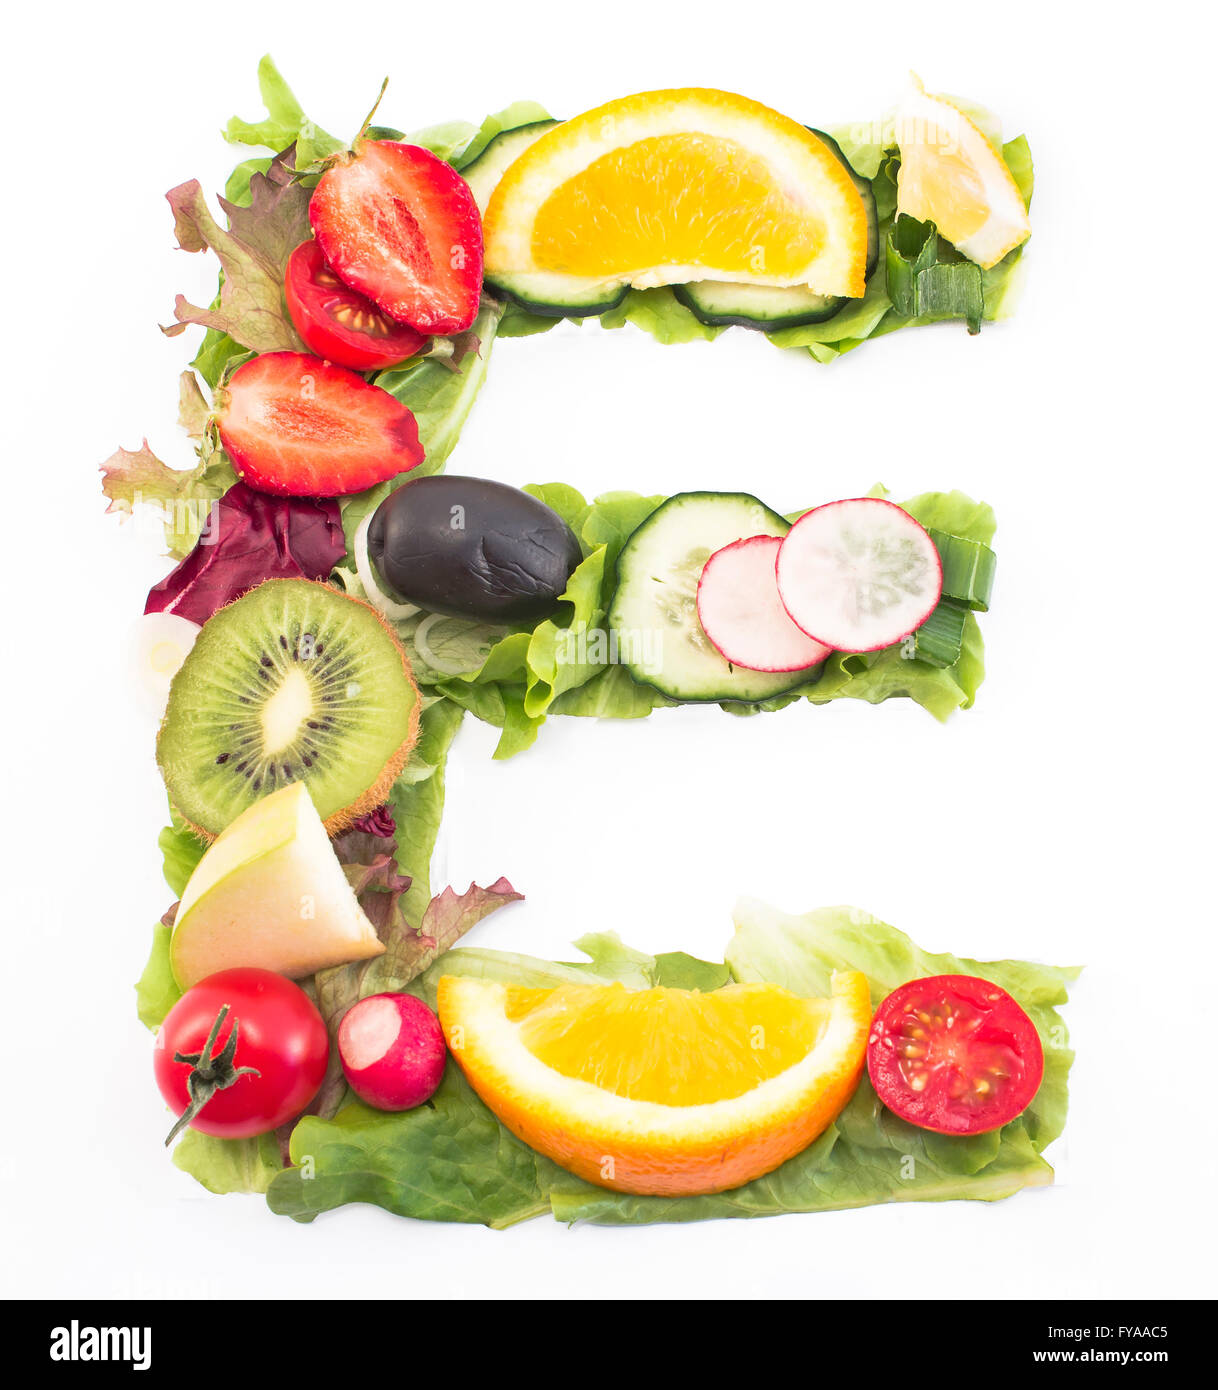 Letter E Made Of Salad And Fruits Stock Photo: 102875253